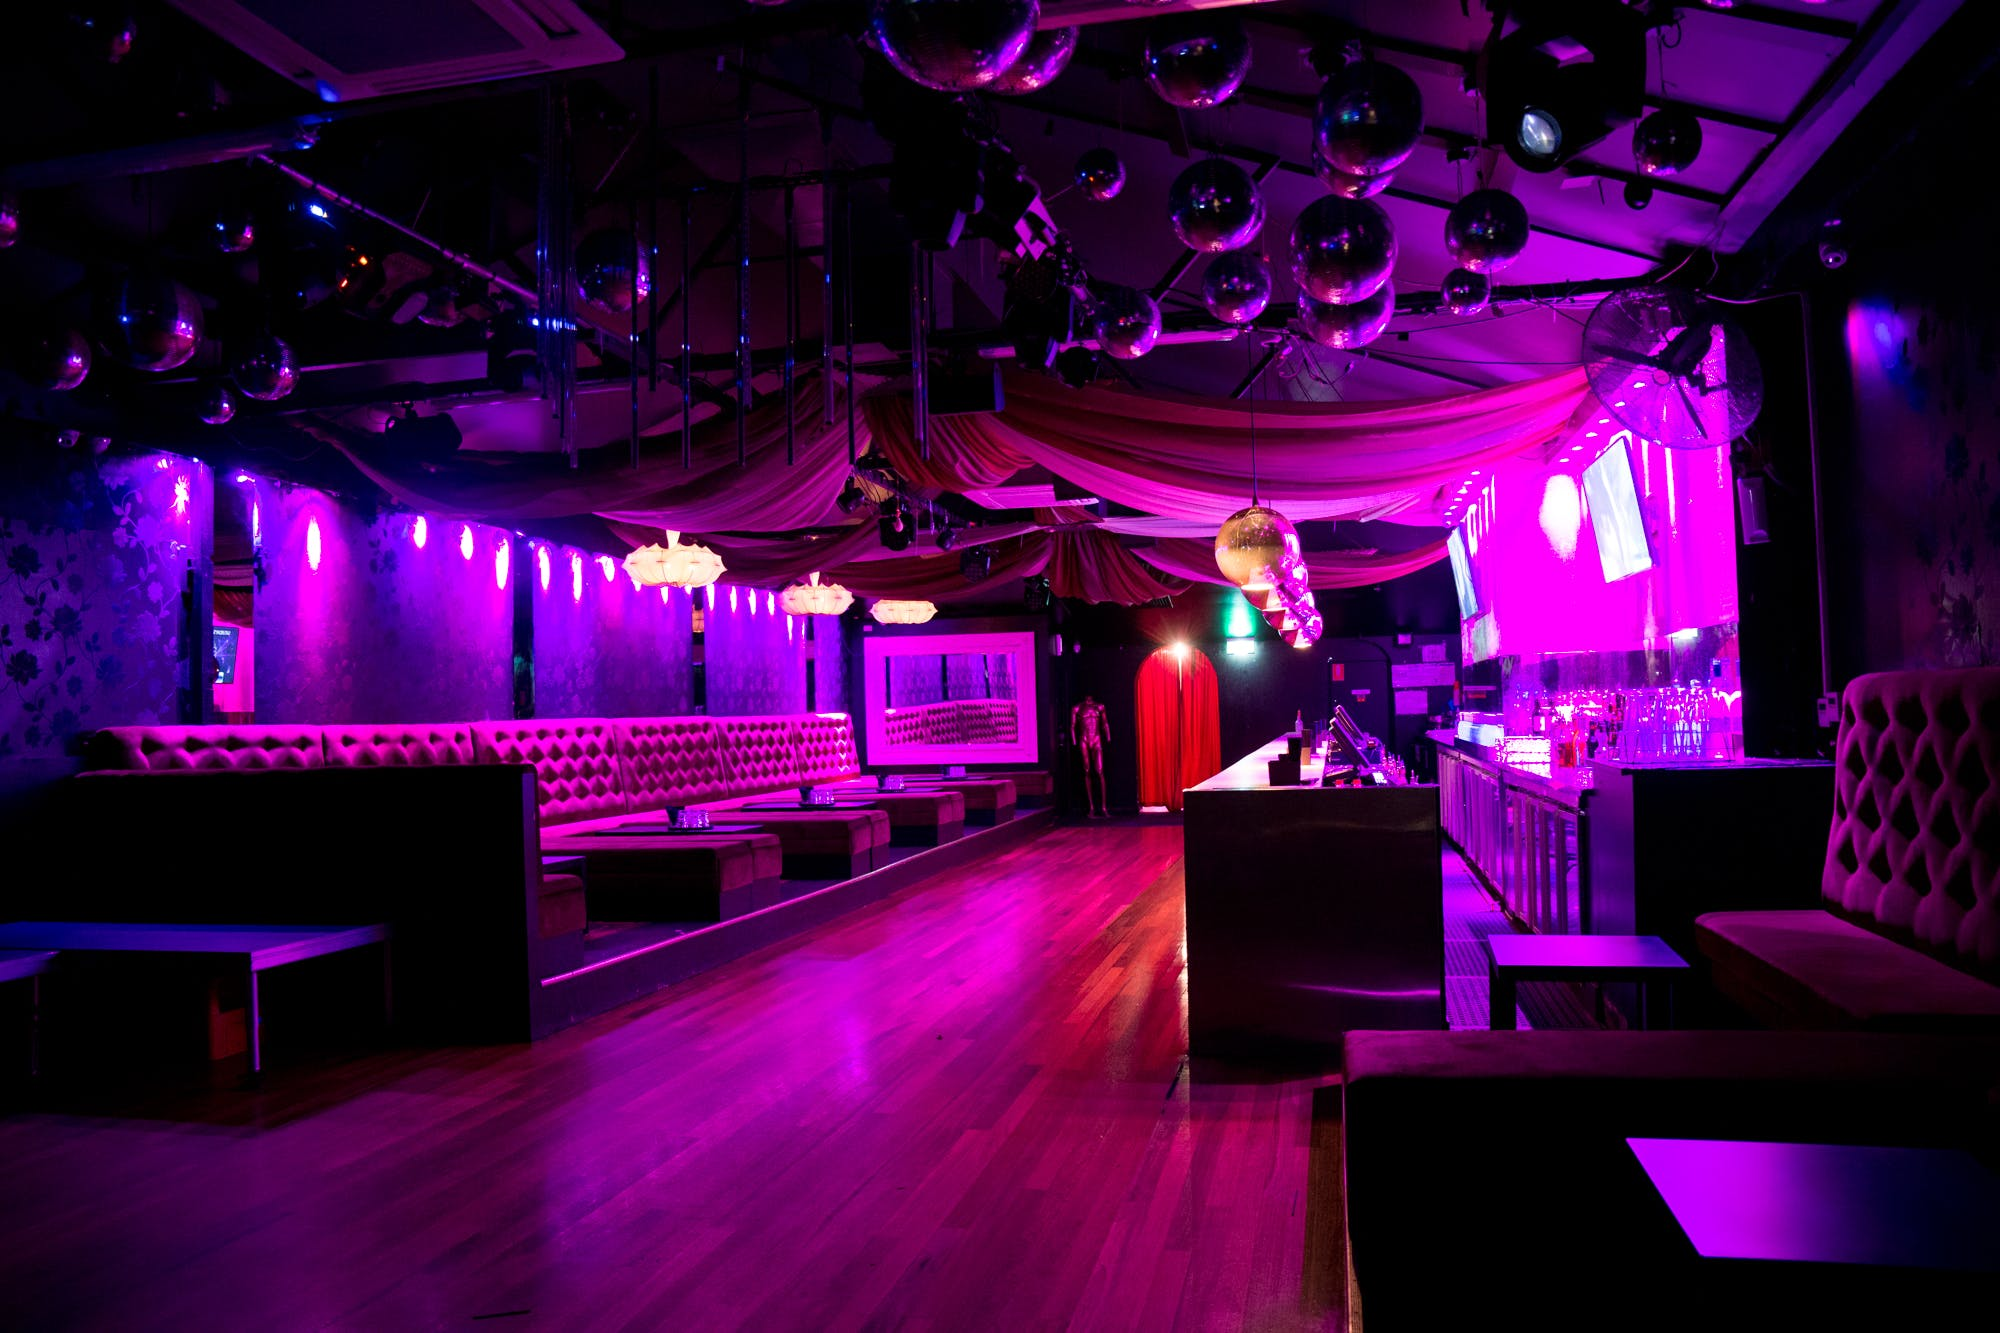 Event Space, function room at Fabrique Bar, image 3